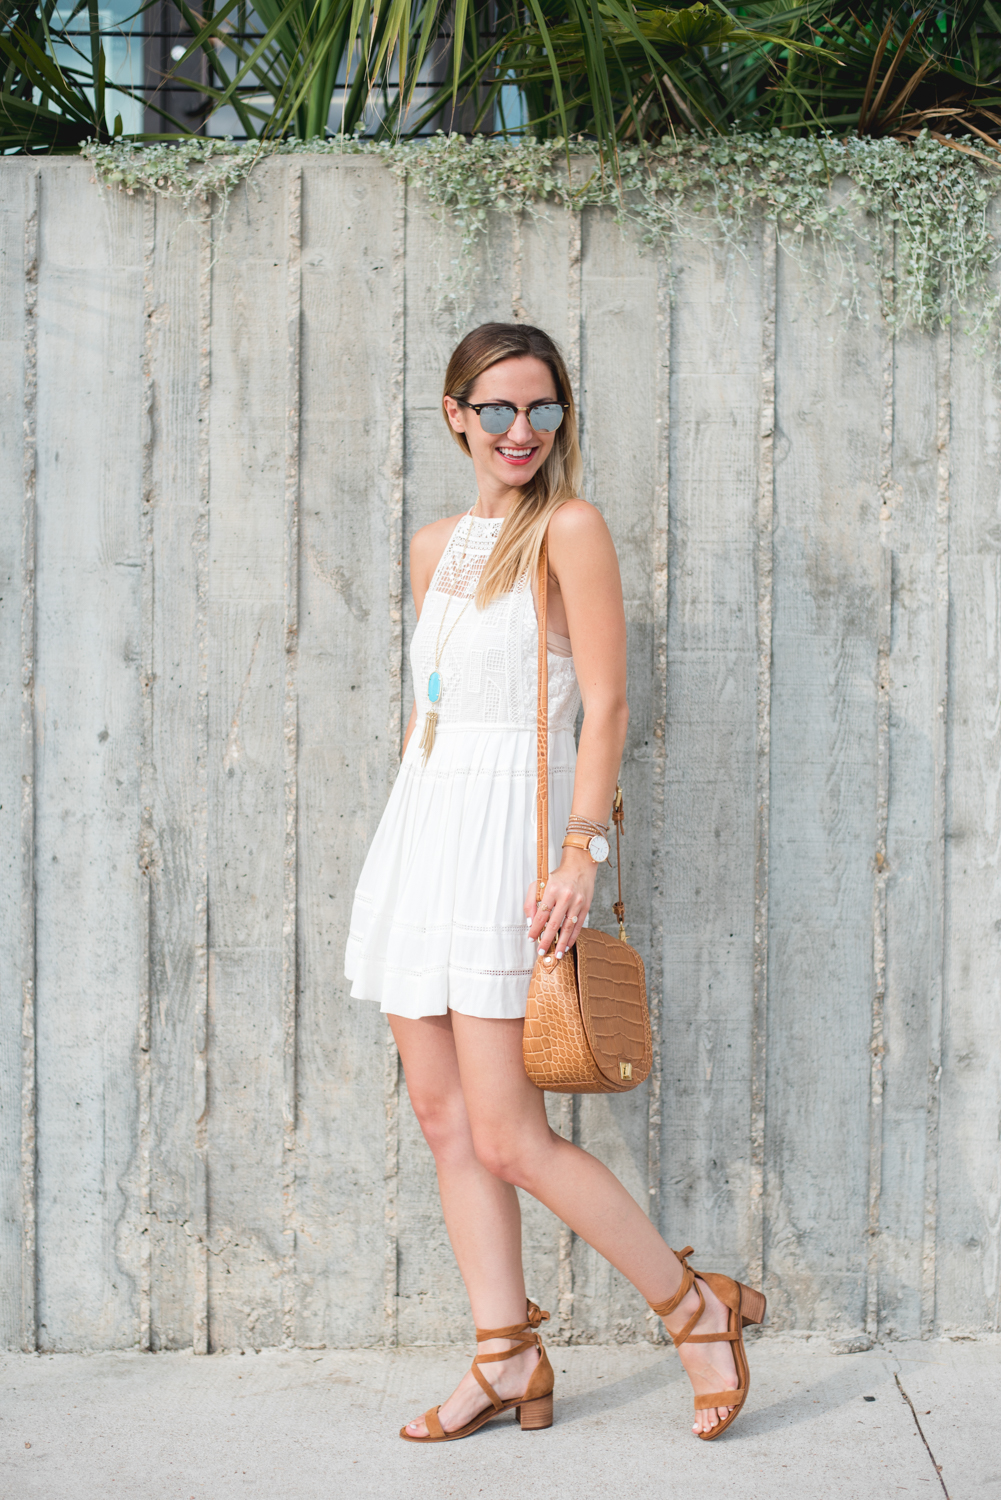 livvyland-blog-olivia-watson-austin-texas-fashion-blogger-free-people-flowy-white-high-neck-crochet-dress-tassel-south-lamar-kathryn-frazer-photography-boho-festival-outfit-5